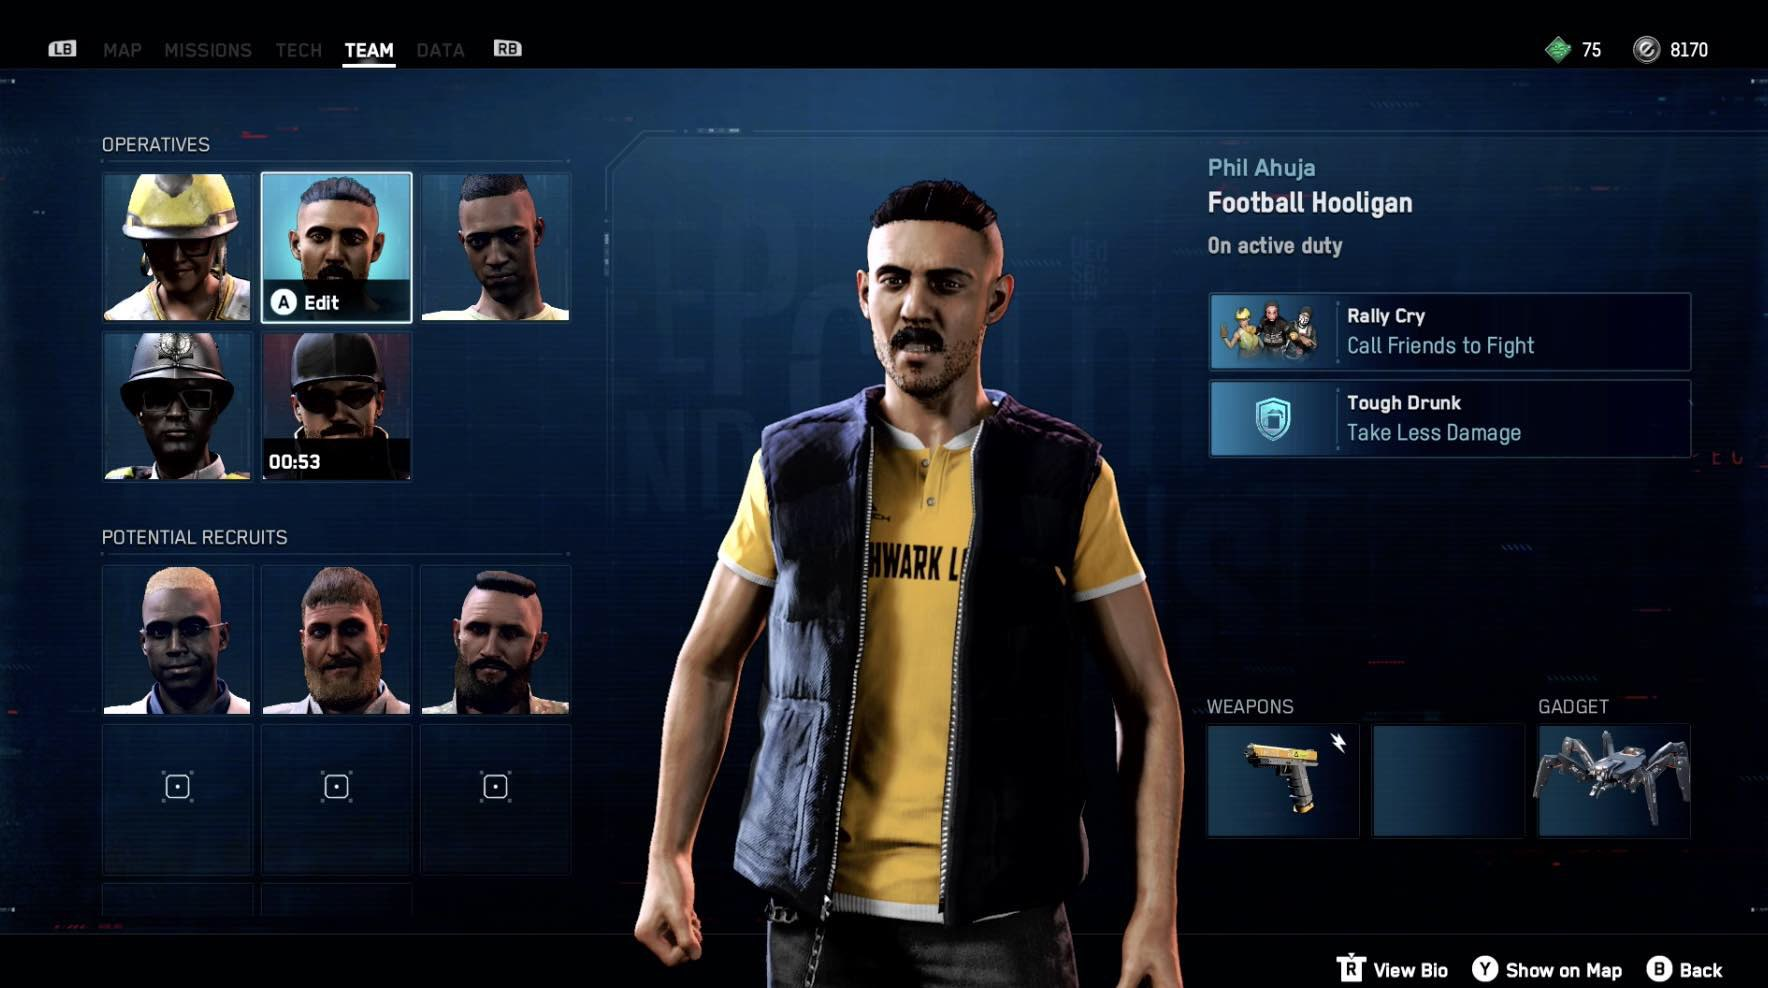 watch-dogs-legion-images-have-been-leaked-1.jpg